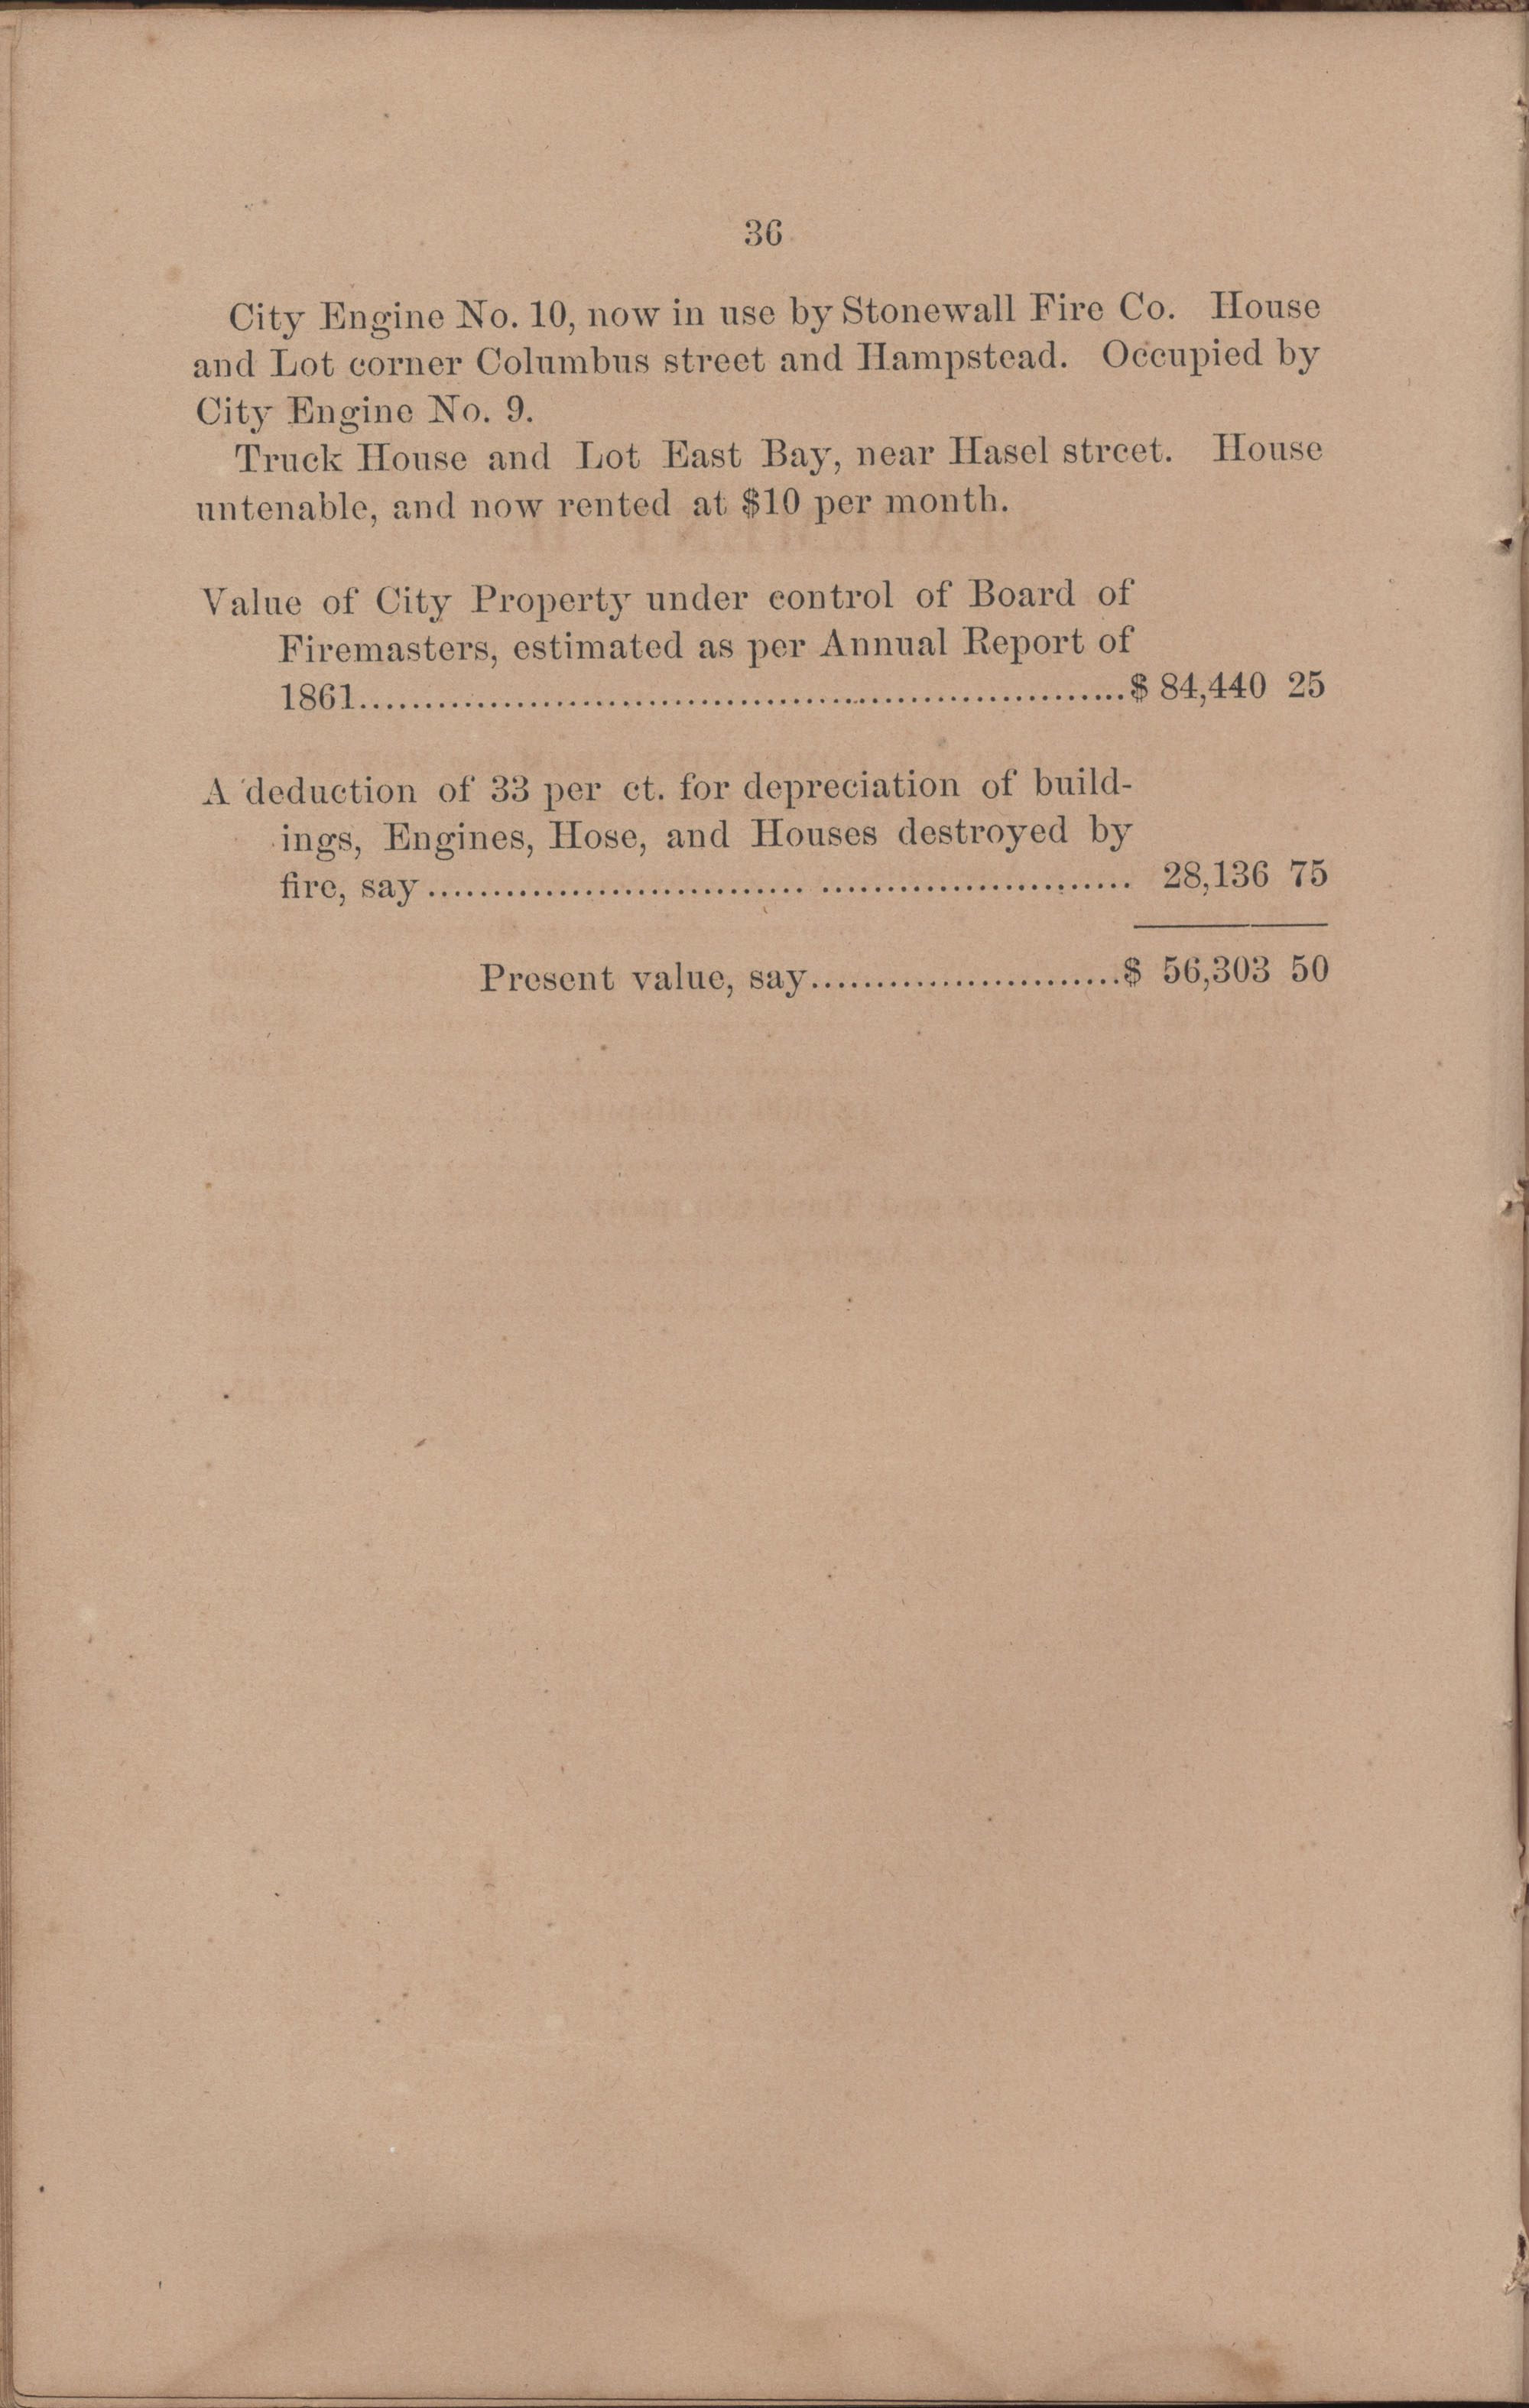 Annual Report of the Chief of the Fire Department of the City of Charleston, page 132